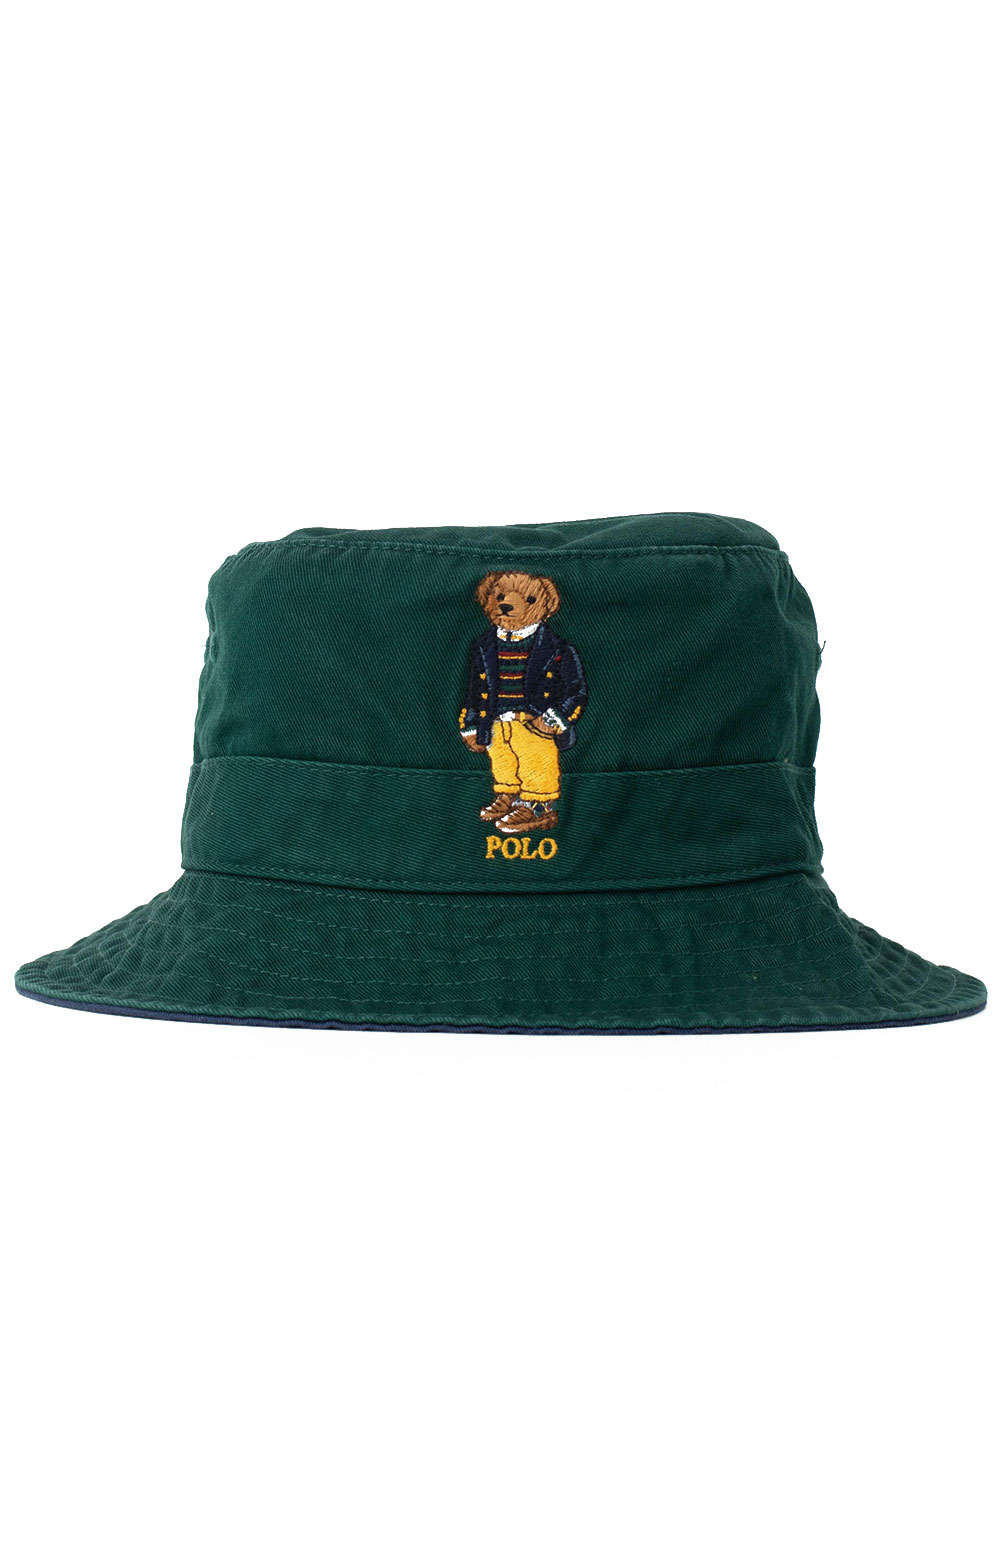 Polo Best Bear Chino Bucket Hat - College Green